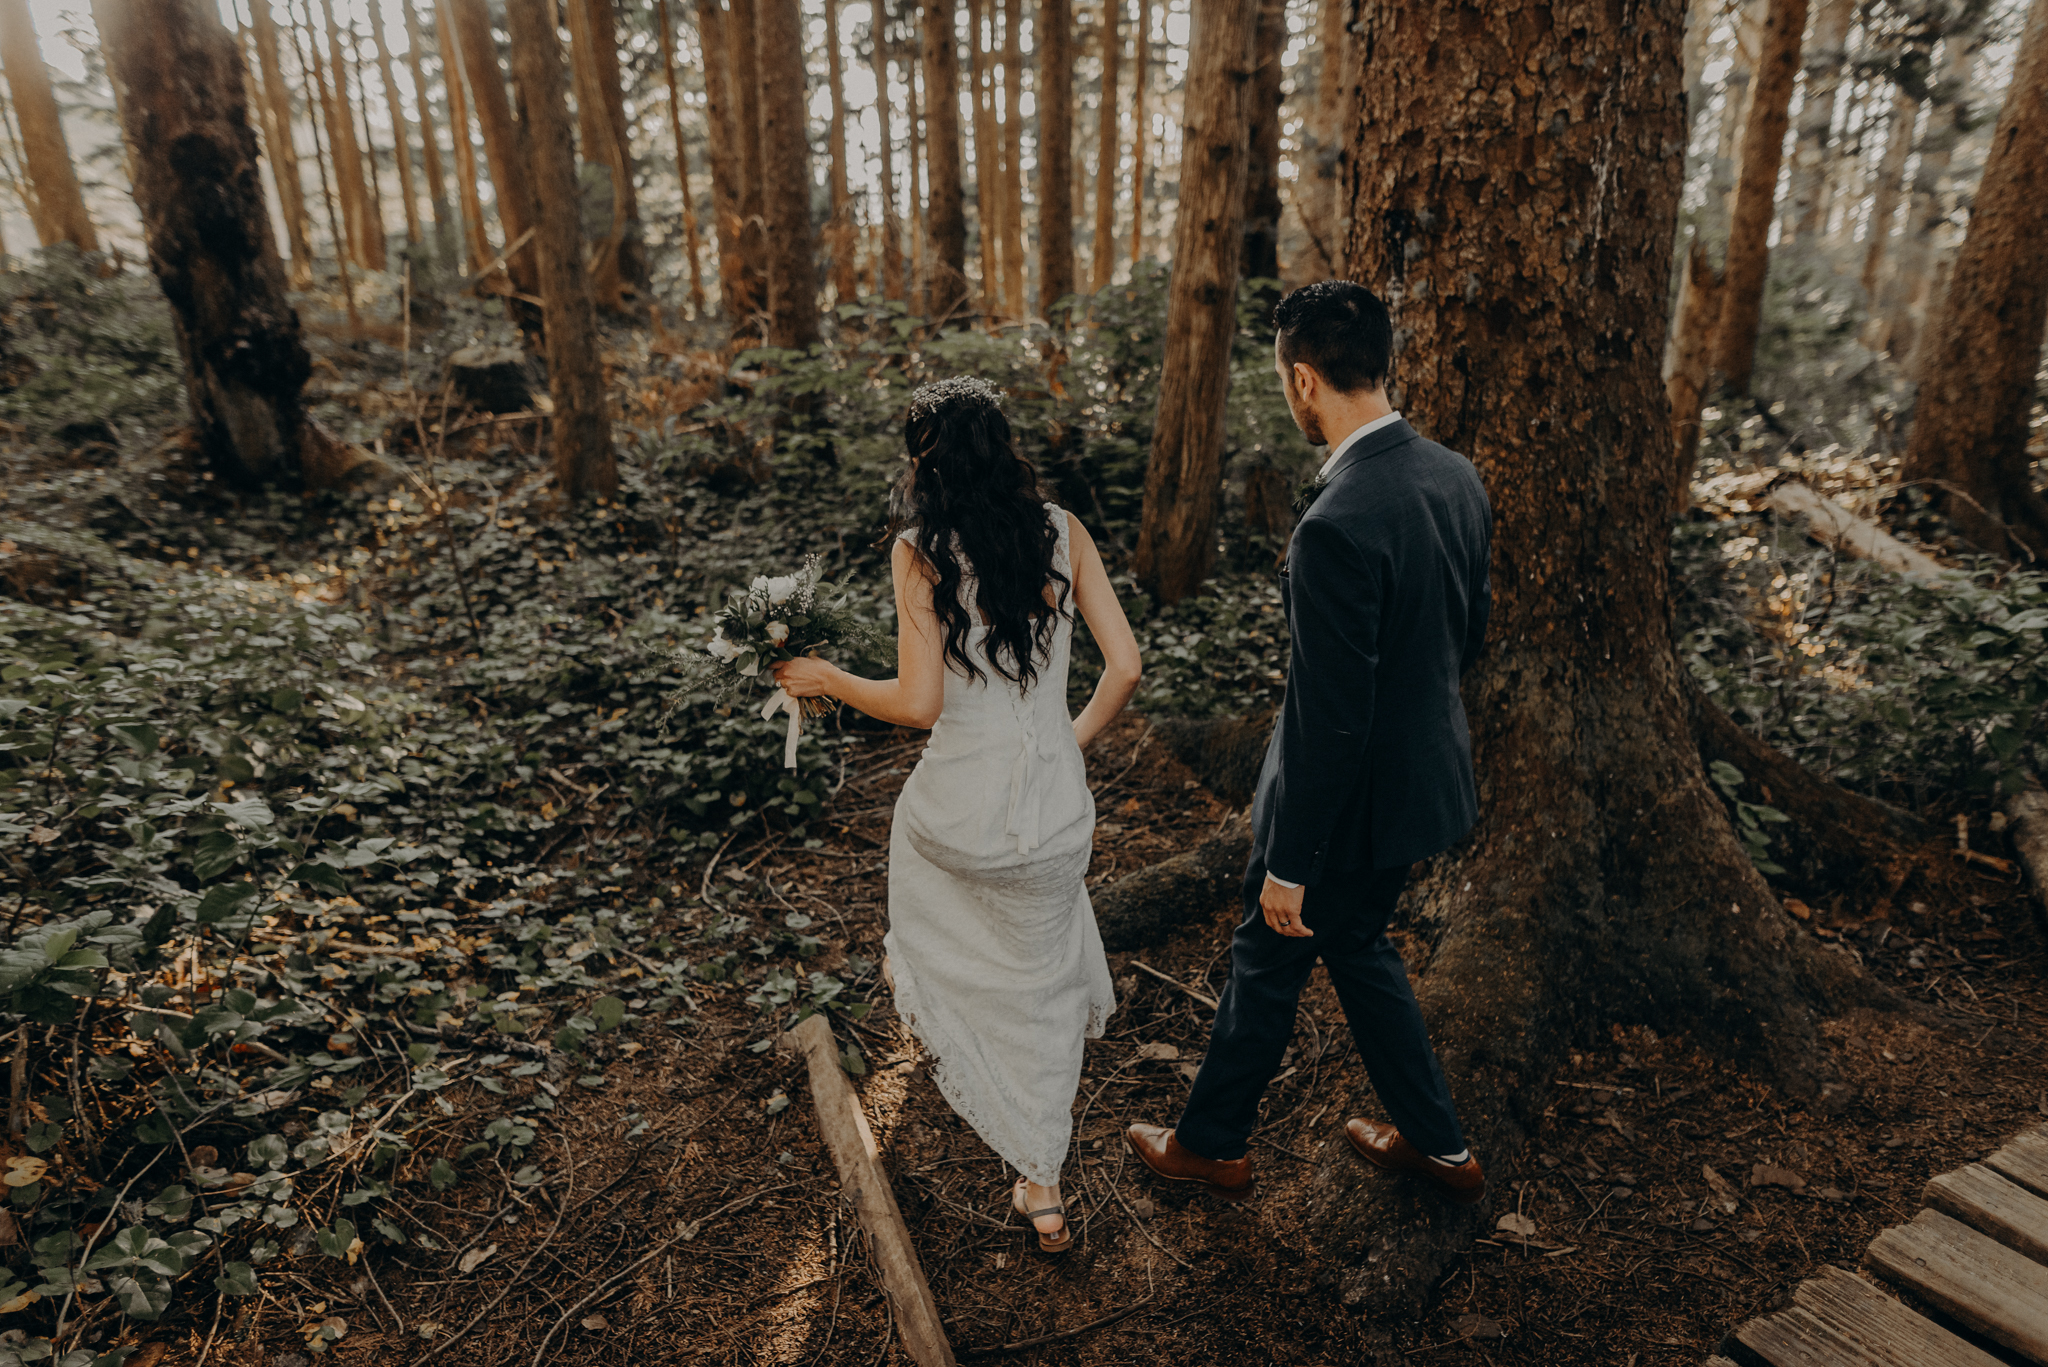 Isaiah + Taylor Photography - Cape Flattery Elopement, Olympia National Forest Wedding Photographer-092.jpg